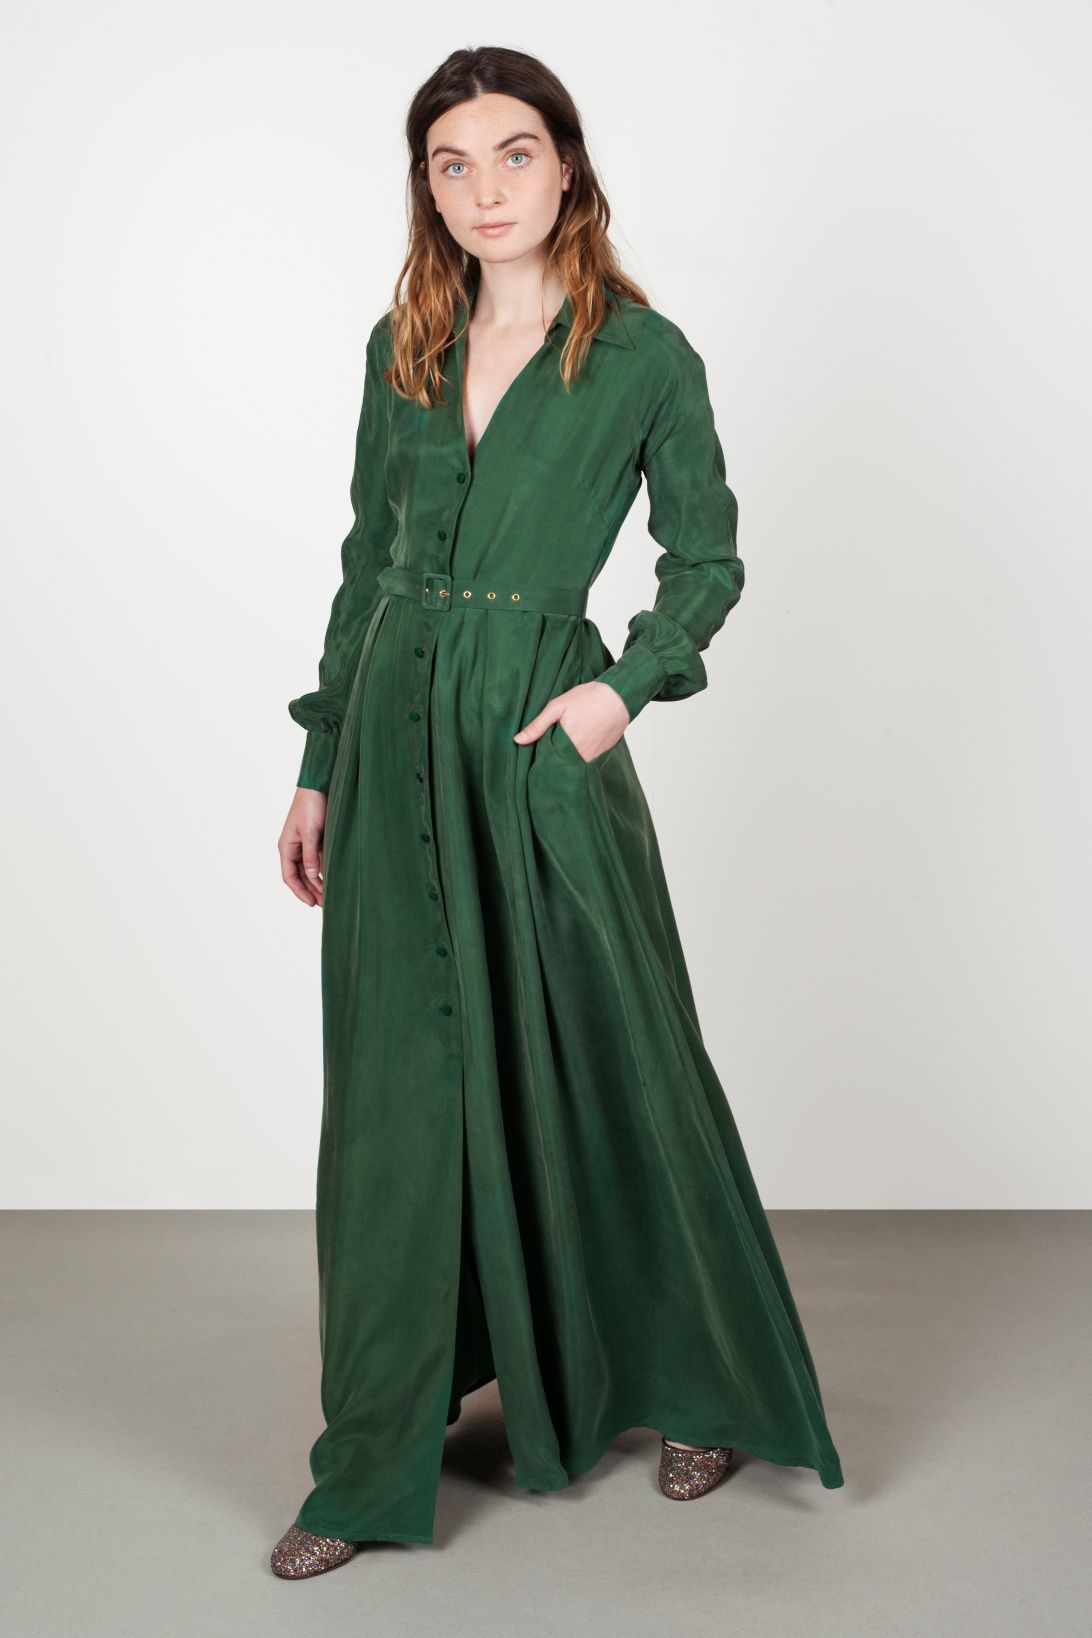 69663f5e9286 Vestido camisero largo PUBOL verde - green long shirt dress - vestito lungo  verde